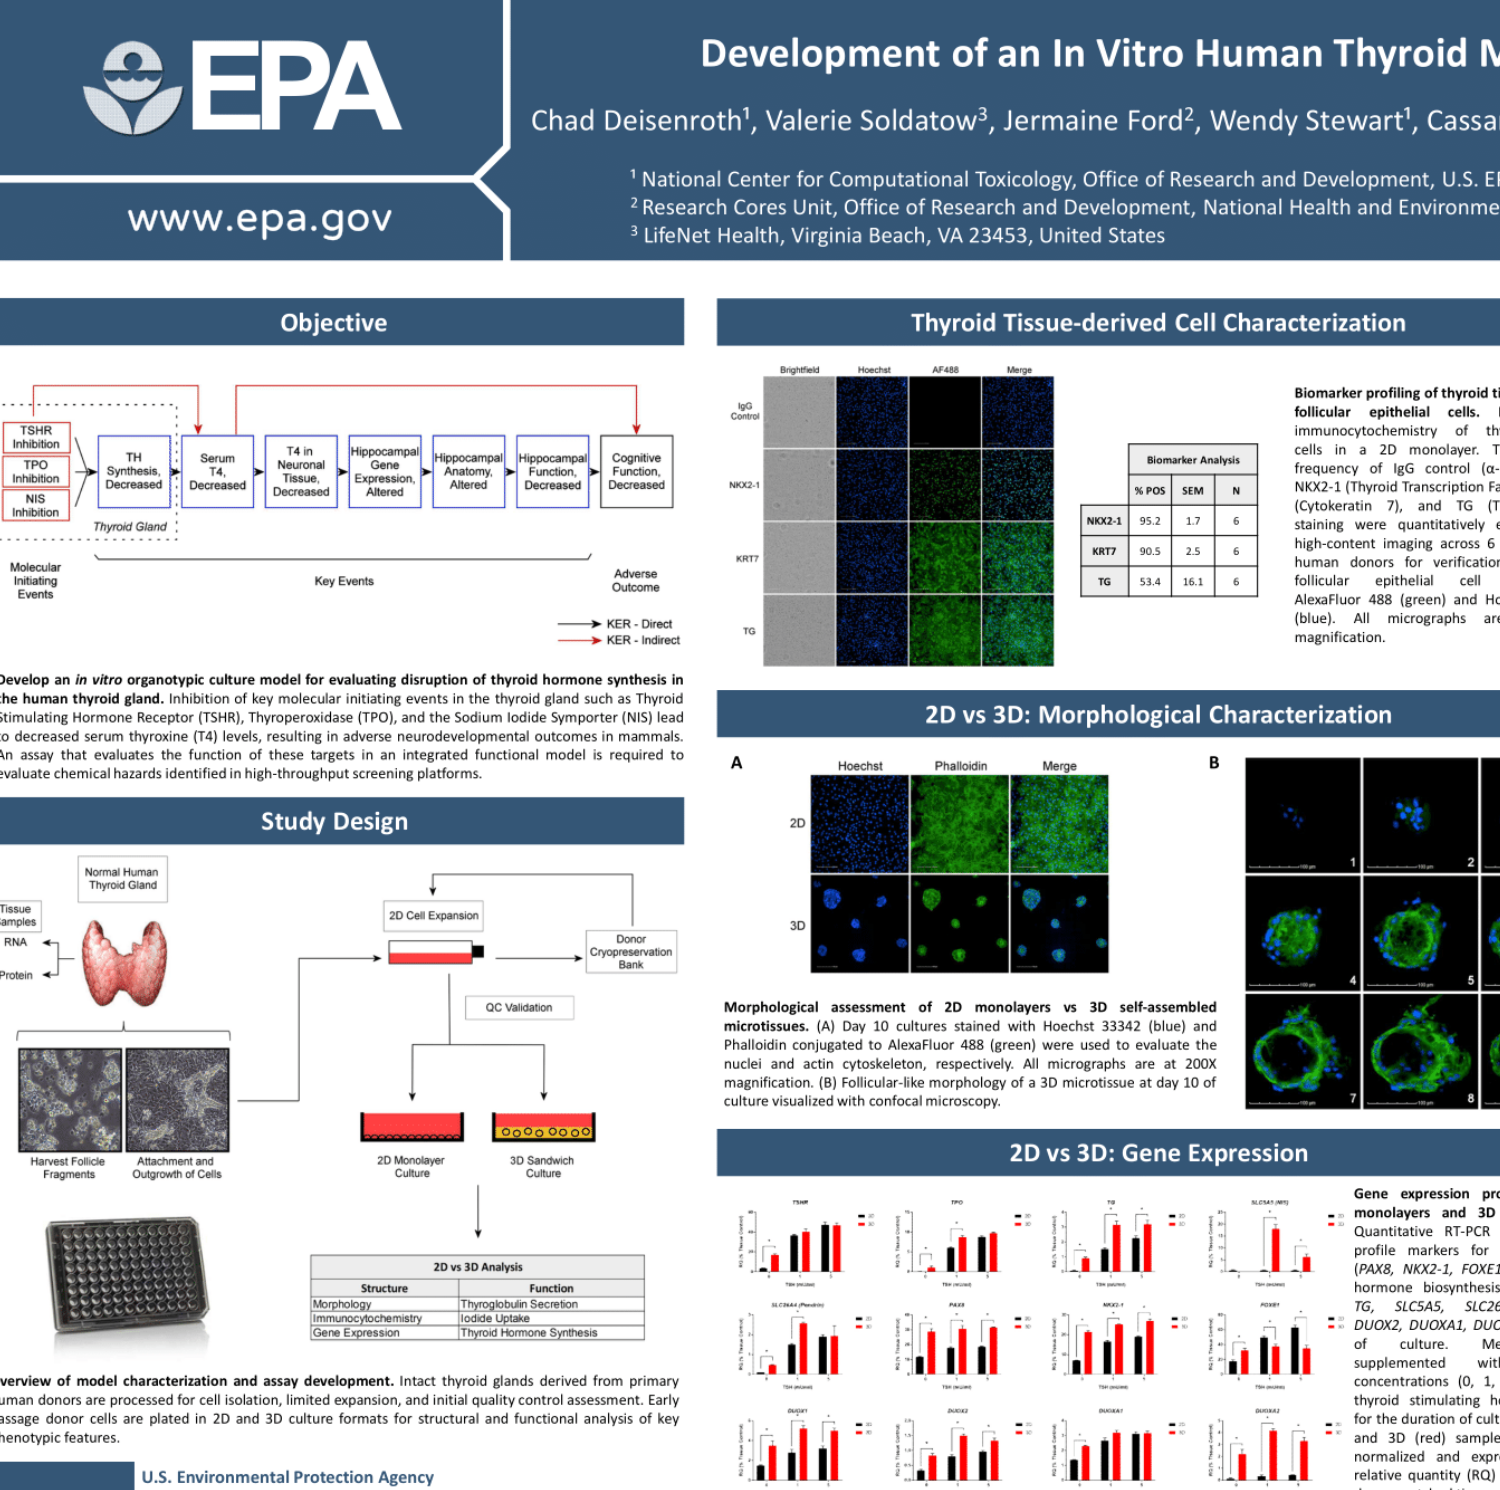 Presented at Society of Toxicology 58th Annual Meeting and ToxExpo